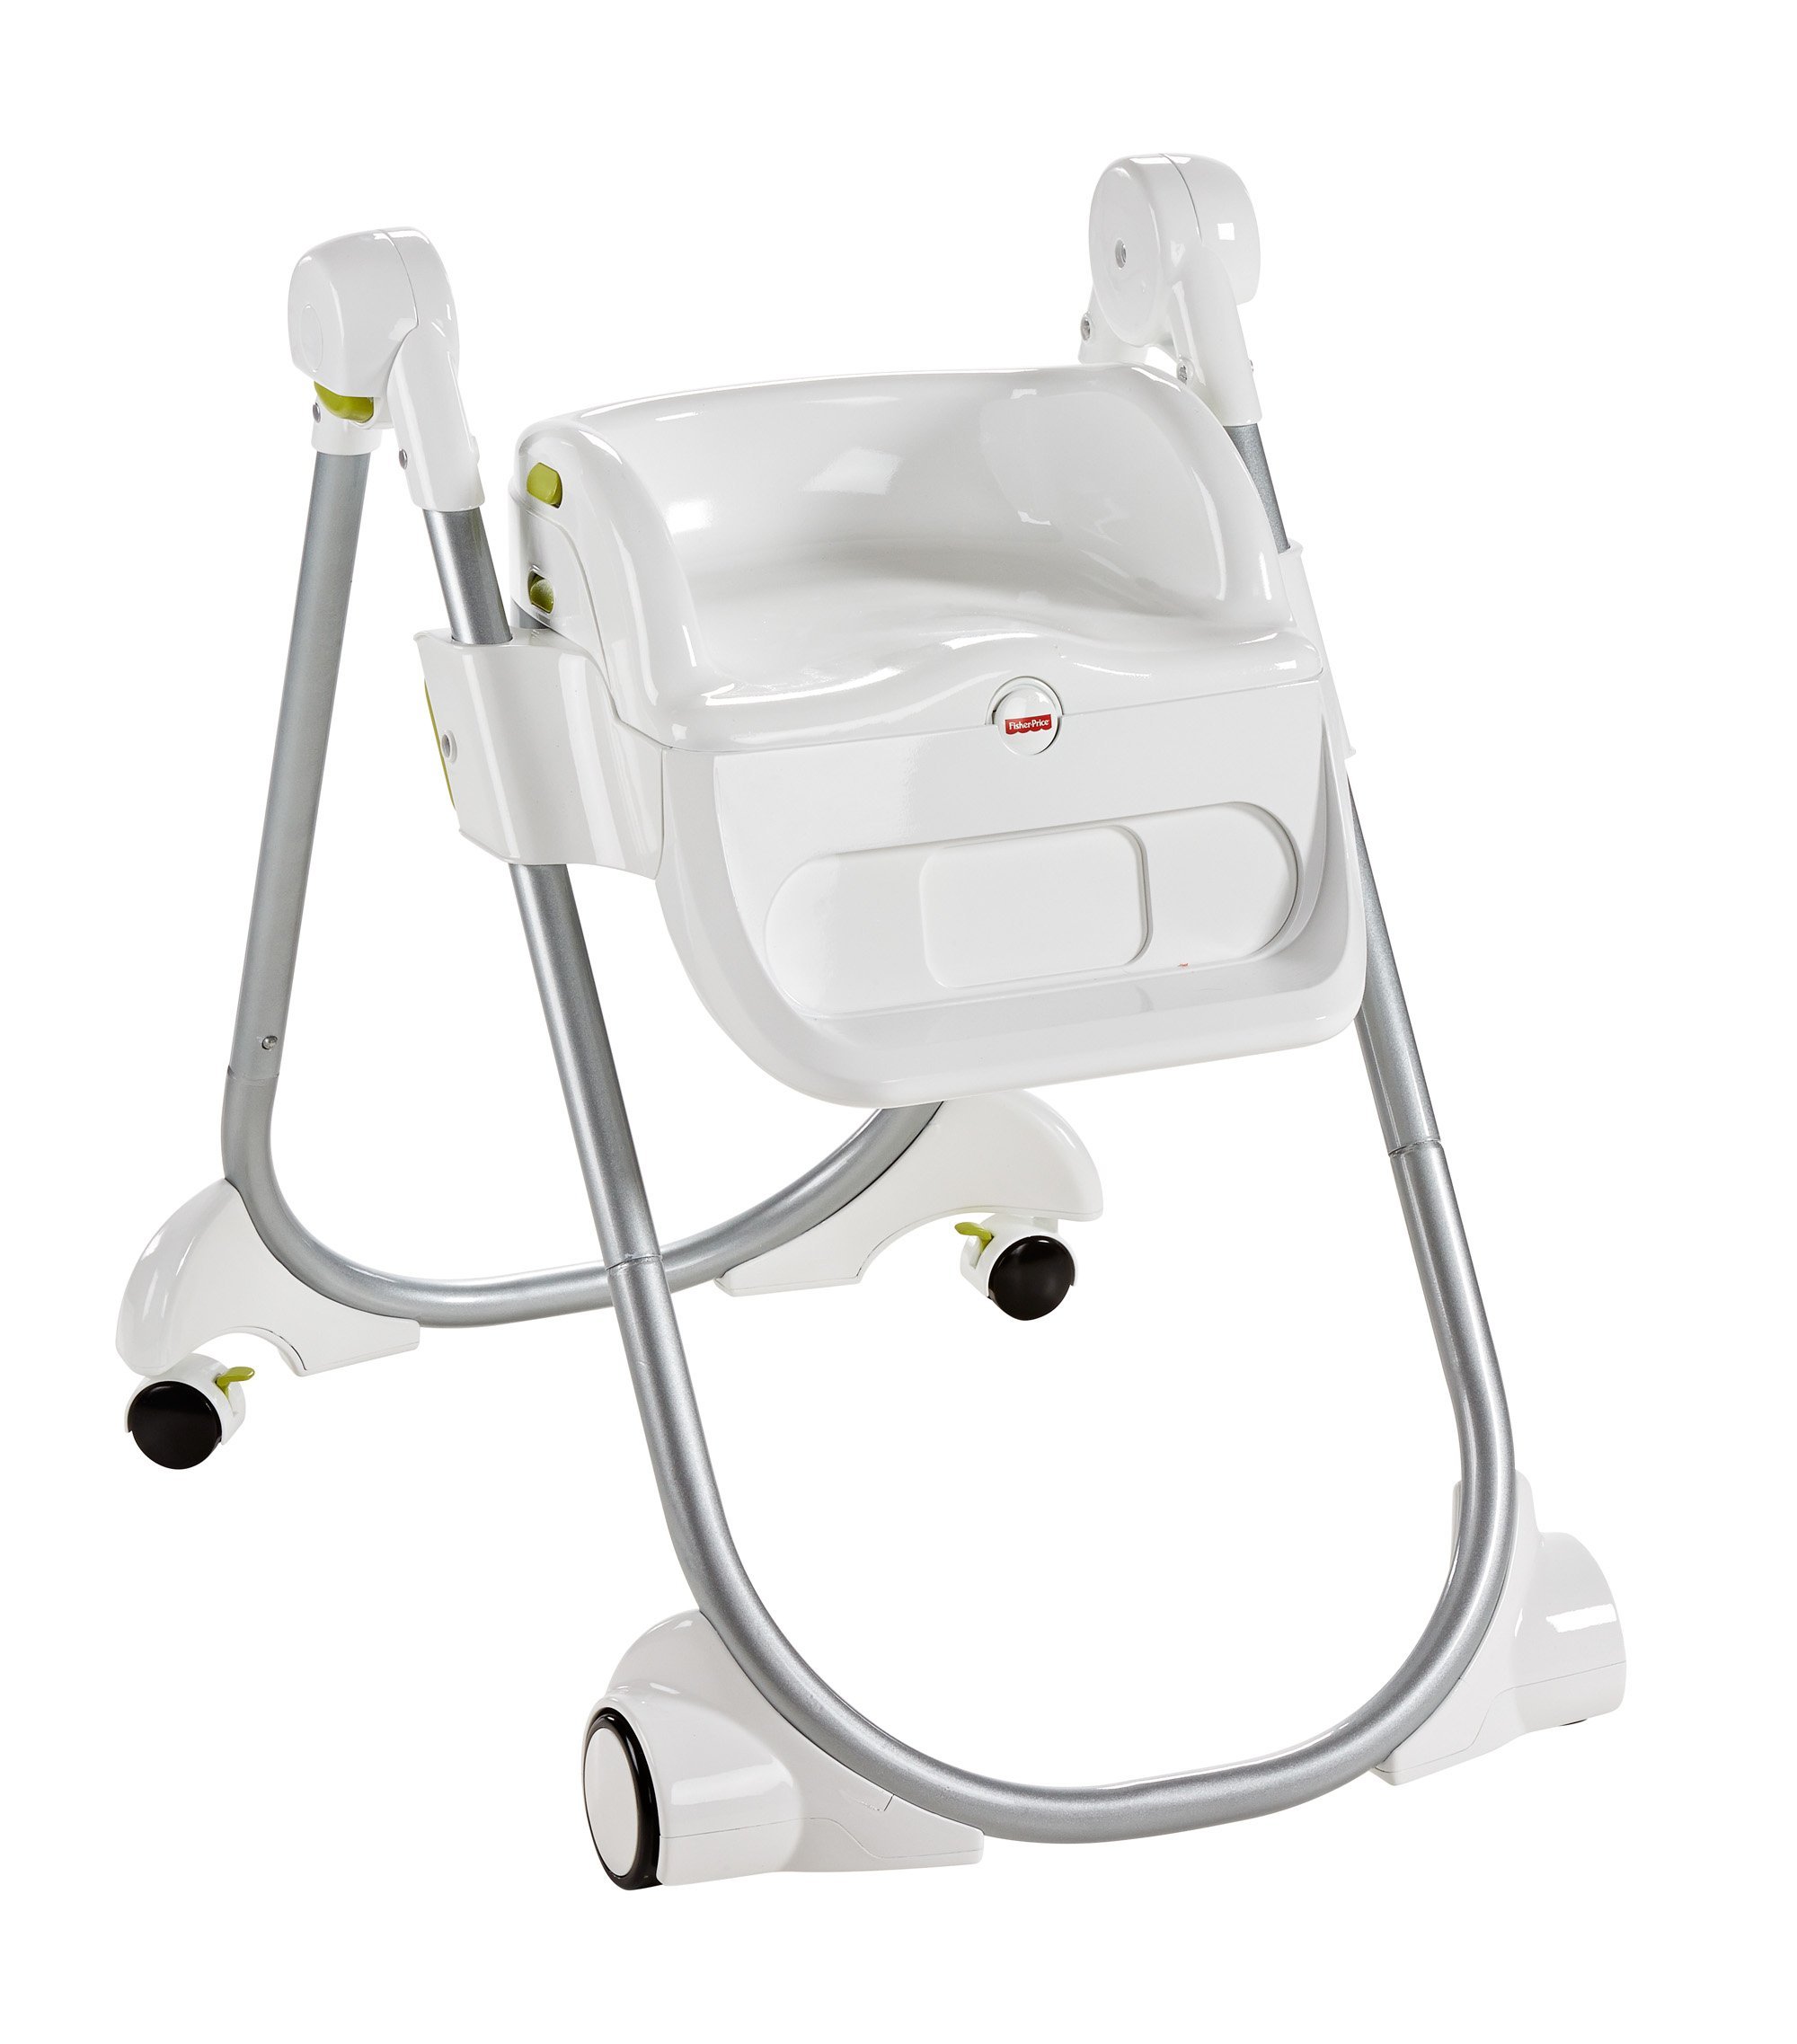 Fisher-Price 4-in-1 Total Clean High Chair, Green/Gray by Fisher-Price (Image #10)